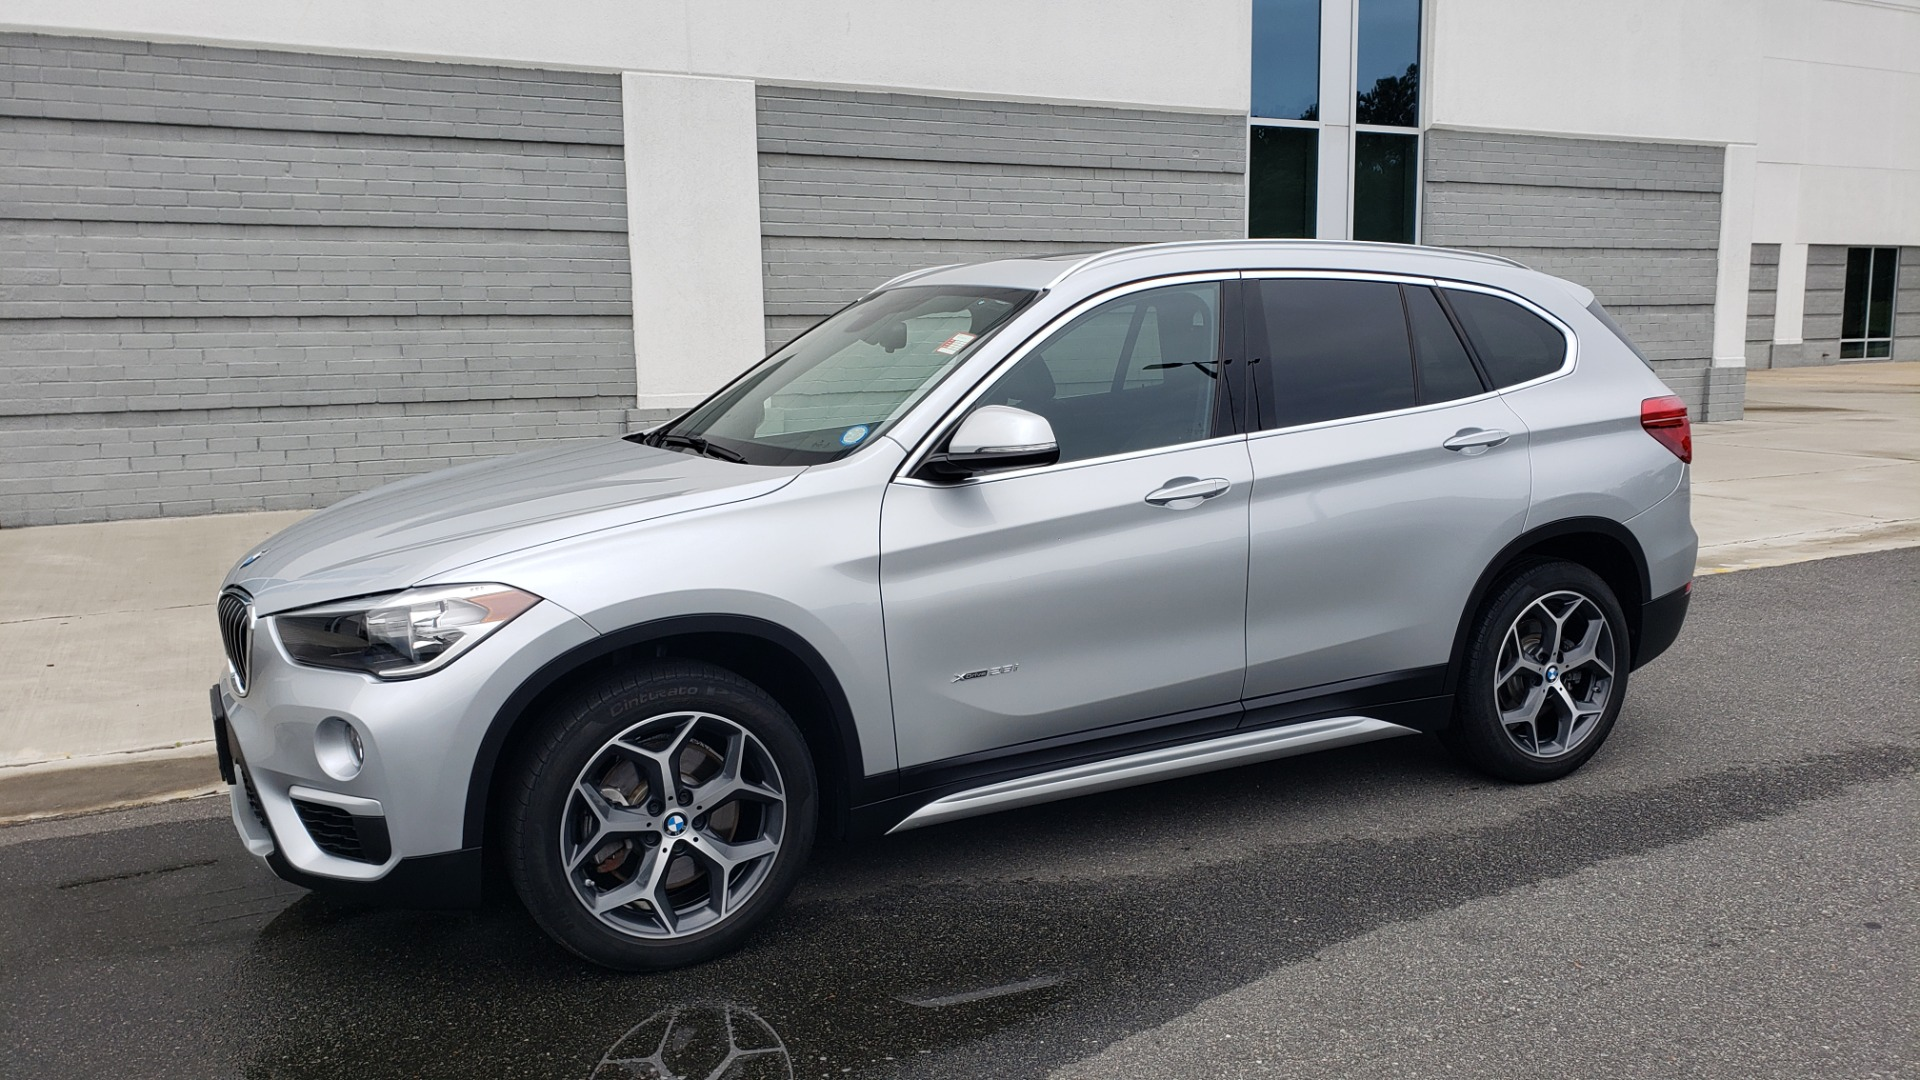 Used 2018 BMW X1 XDRIVE38I / NAV / CONV PKG / PANO-ROOF / HTD STS / REARVIEW for sale $28,995 at Formula Imports in Charlotte NC 28227 4